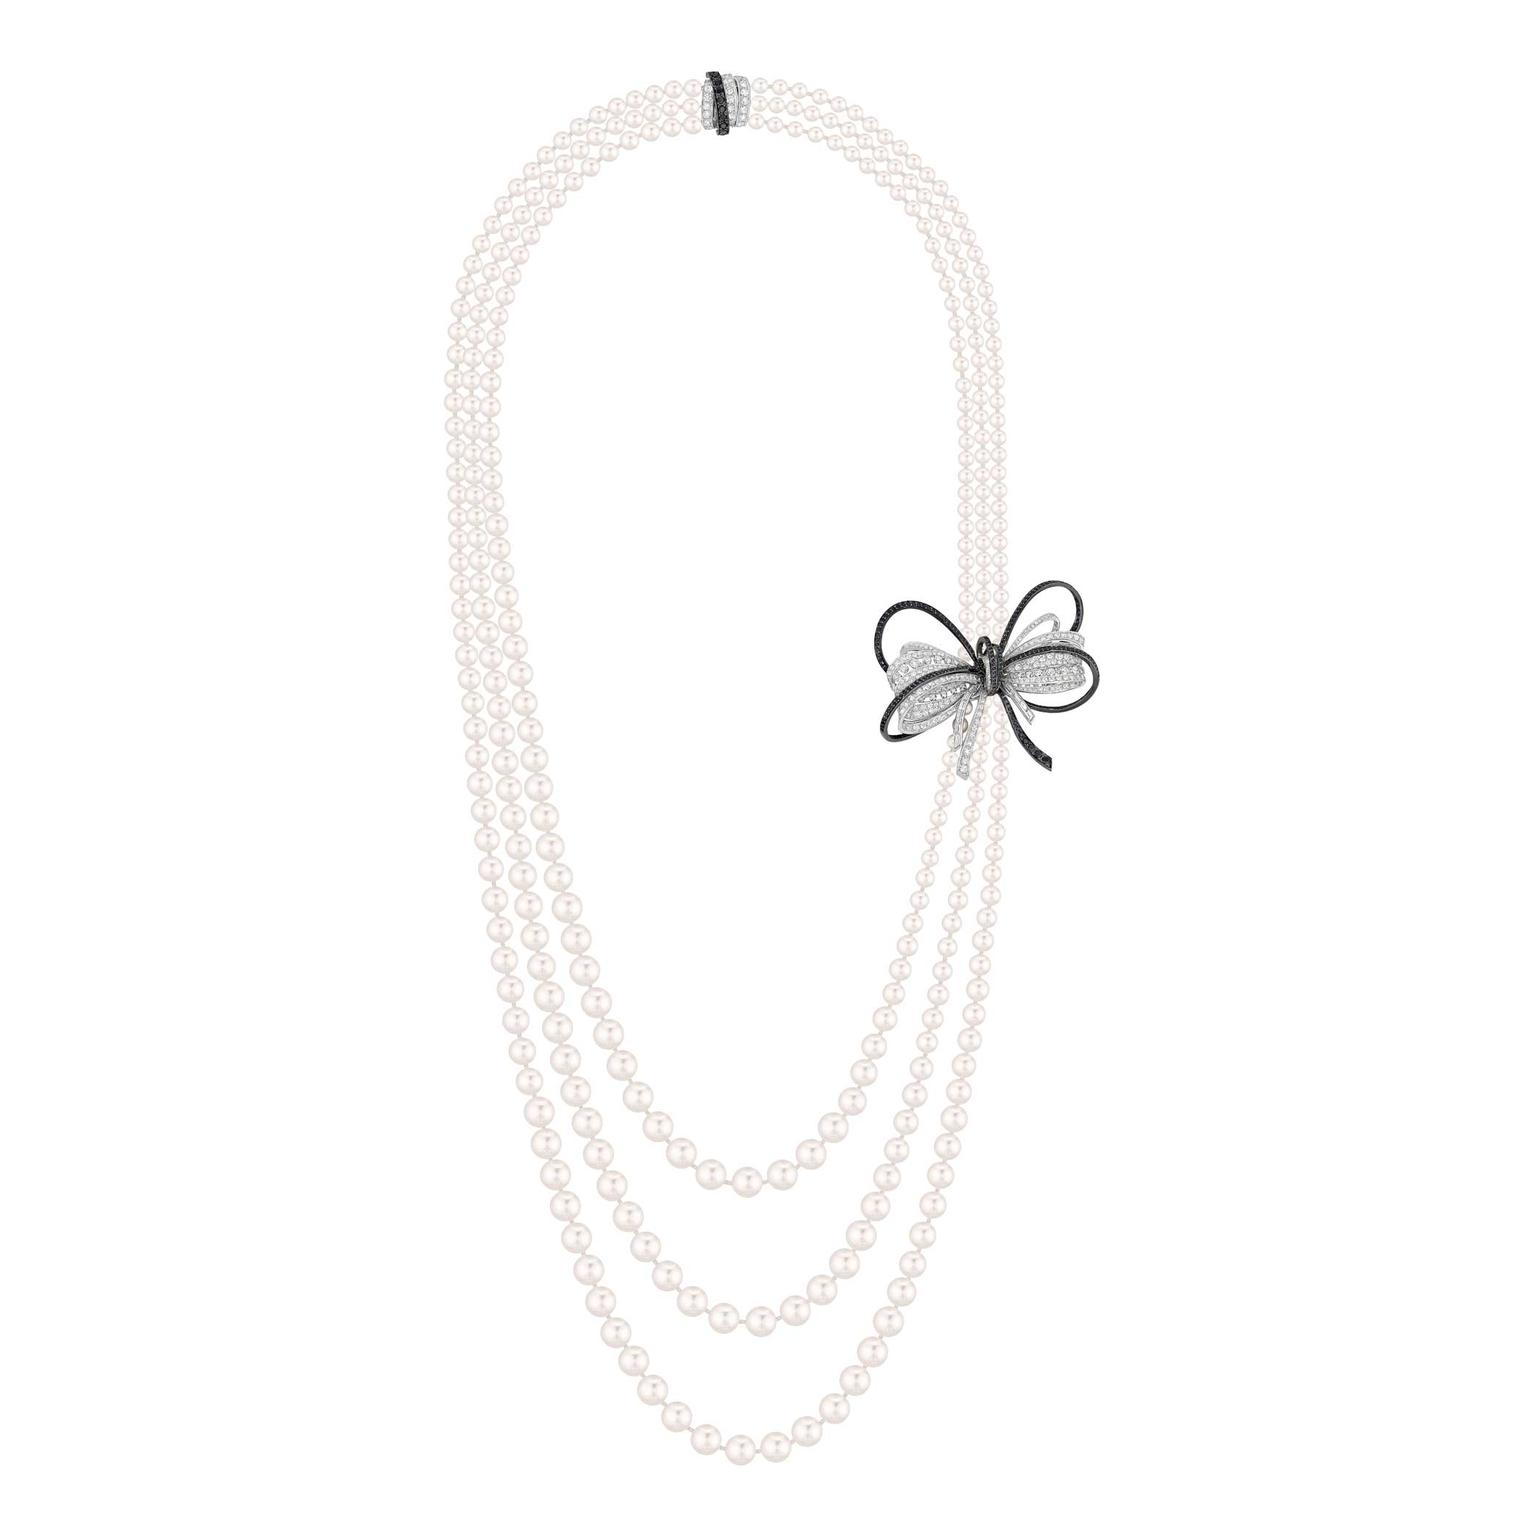 Chanel Collier Couture pearl necklace